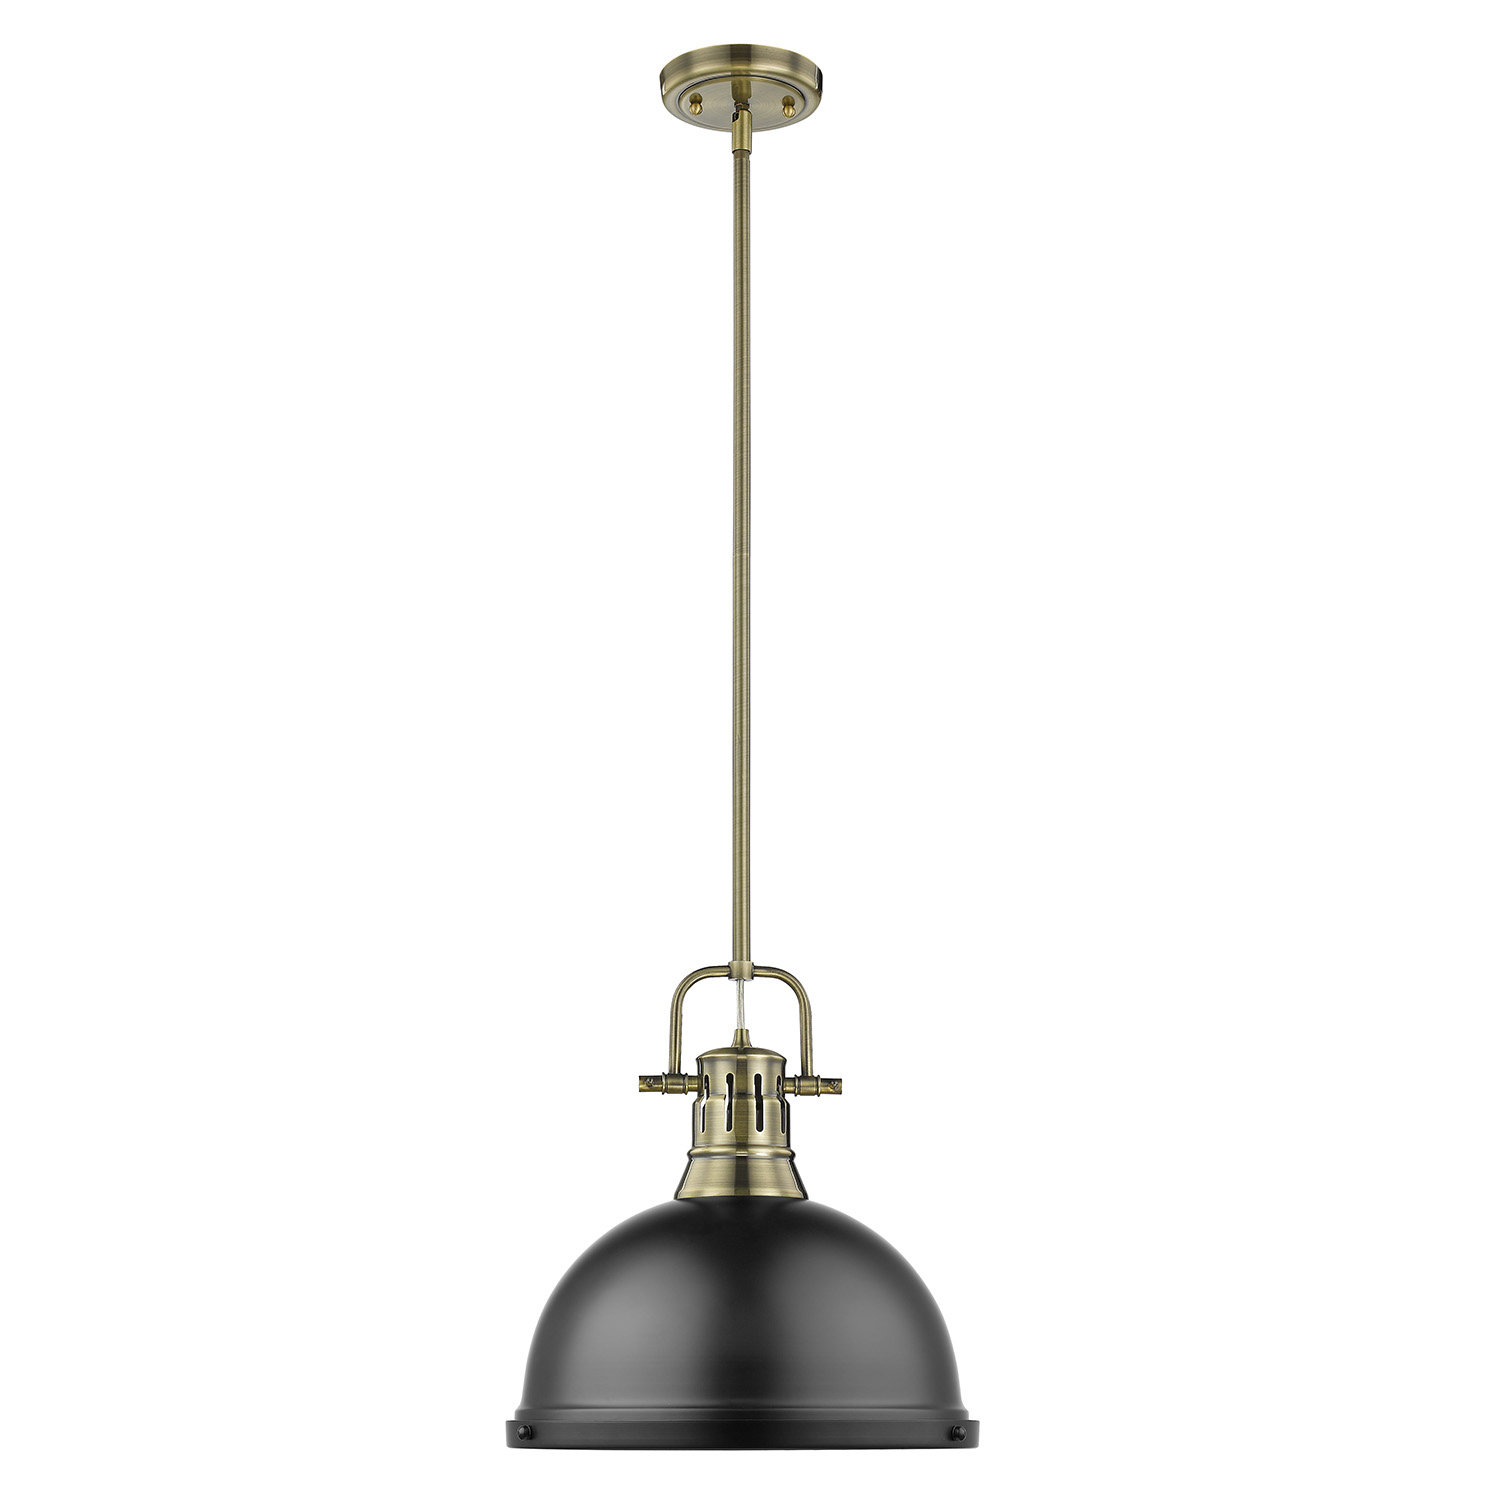 Bodalla 1 Light Single Dome Pendant With Bodalla 1 Light Single Bell Pendants (View 9 of 30)